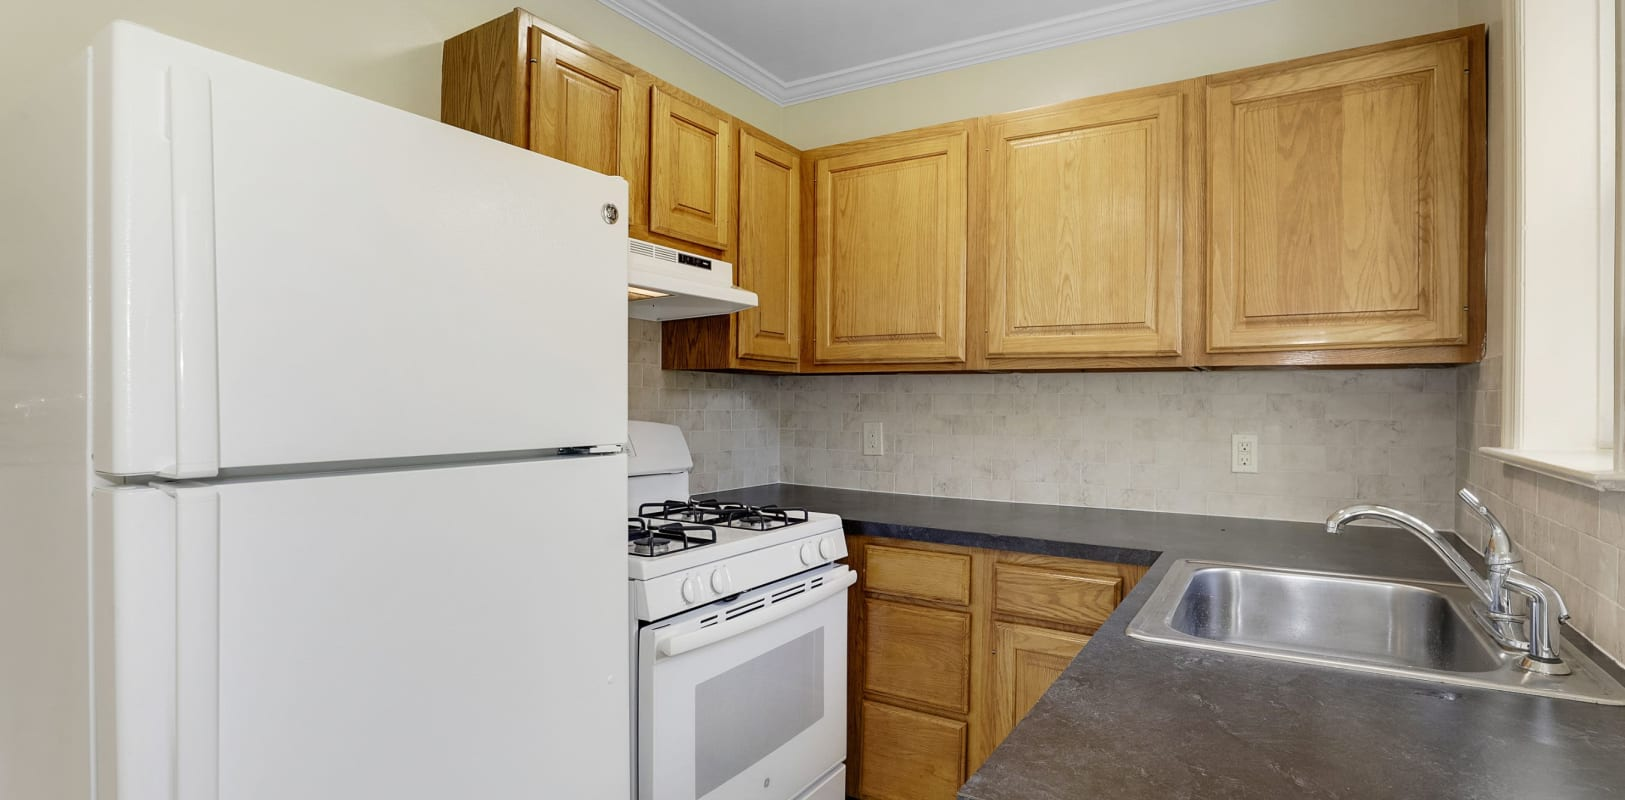 Bright, spacious kitchen at Mayflower Apartments in Ridgewood, New Jersey